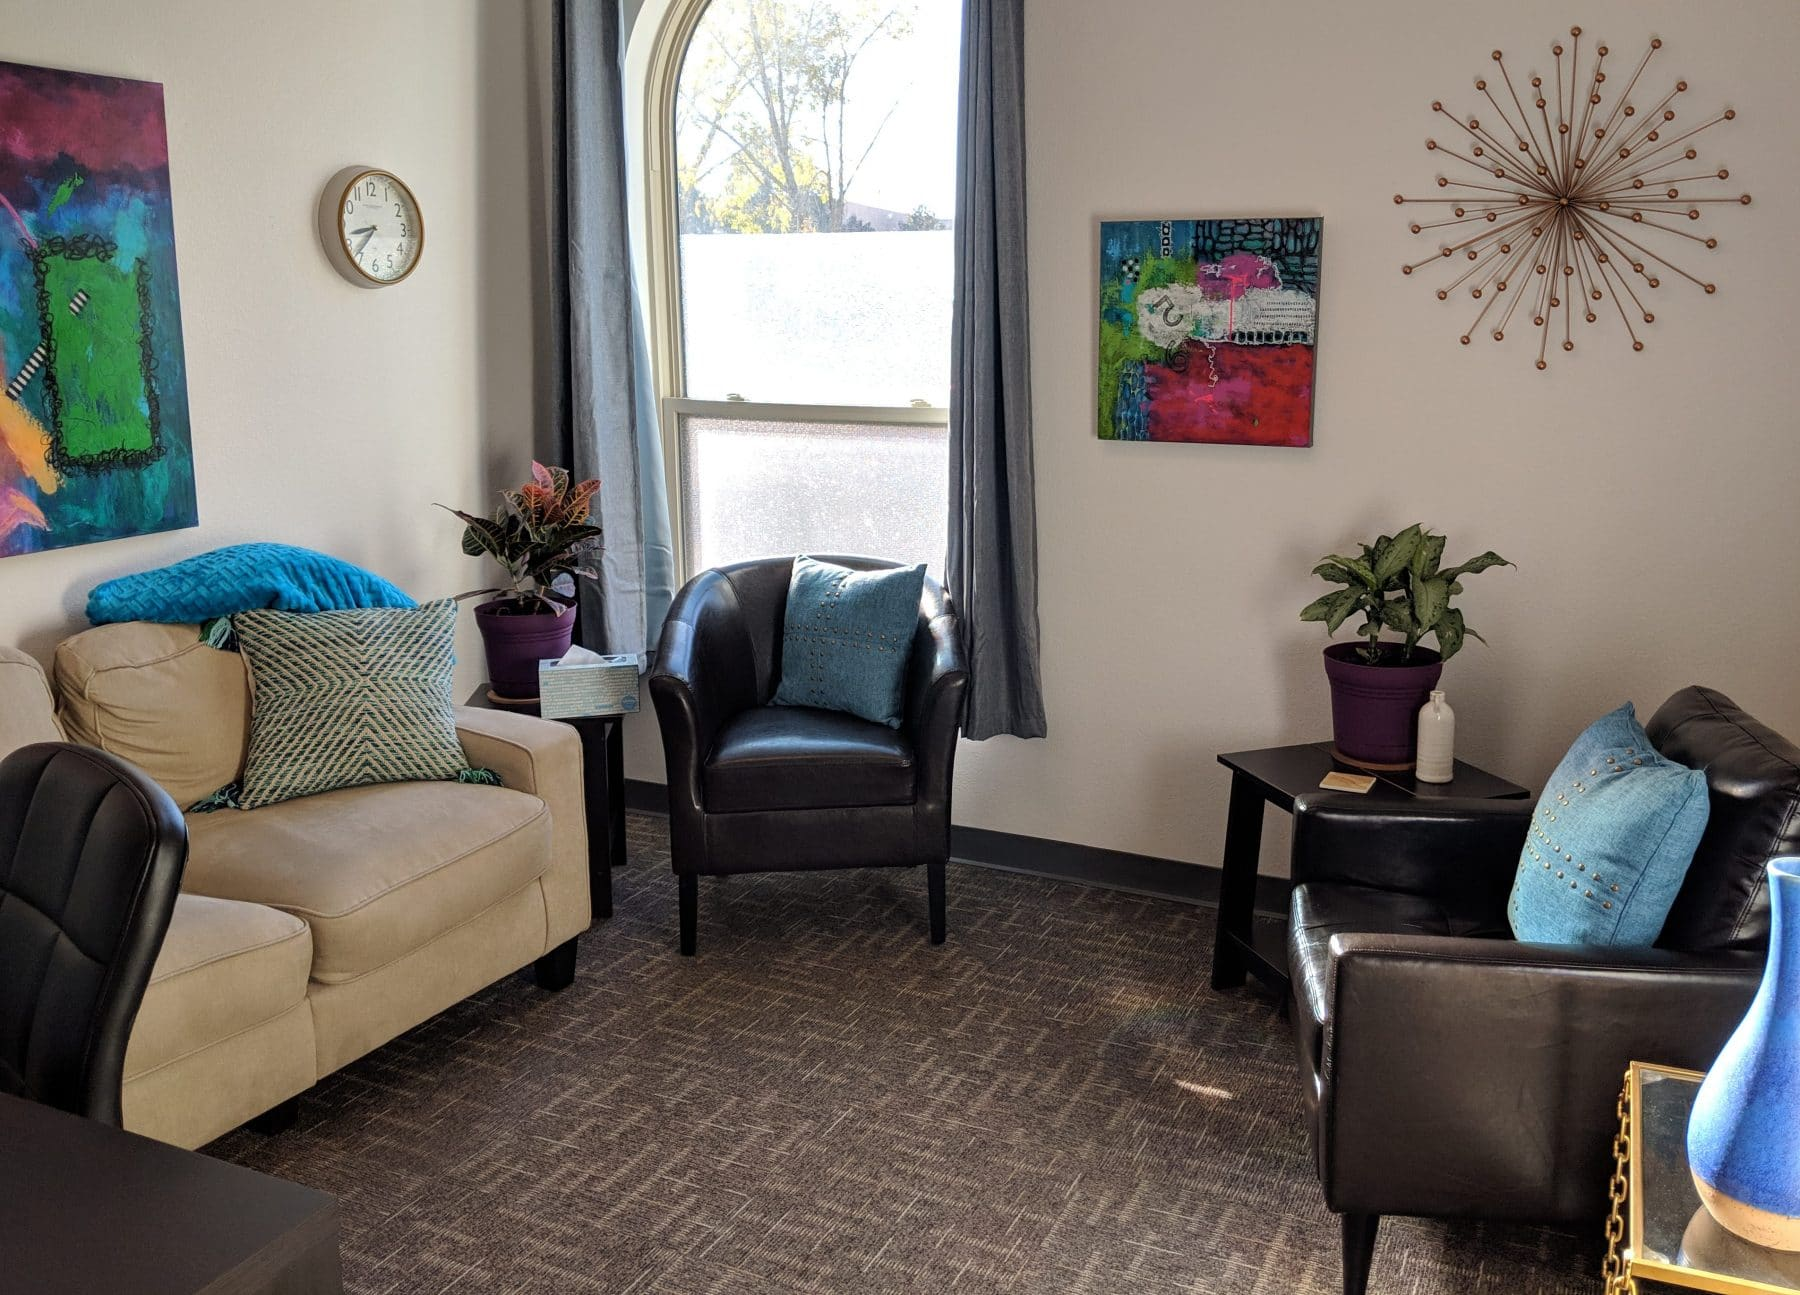 Therapy Room at Elevation Counseling in Albuquerque for individual psychotherapy and counseling, couples counseling, family counseling, mental health therapy.